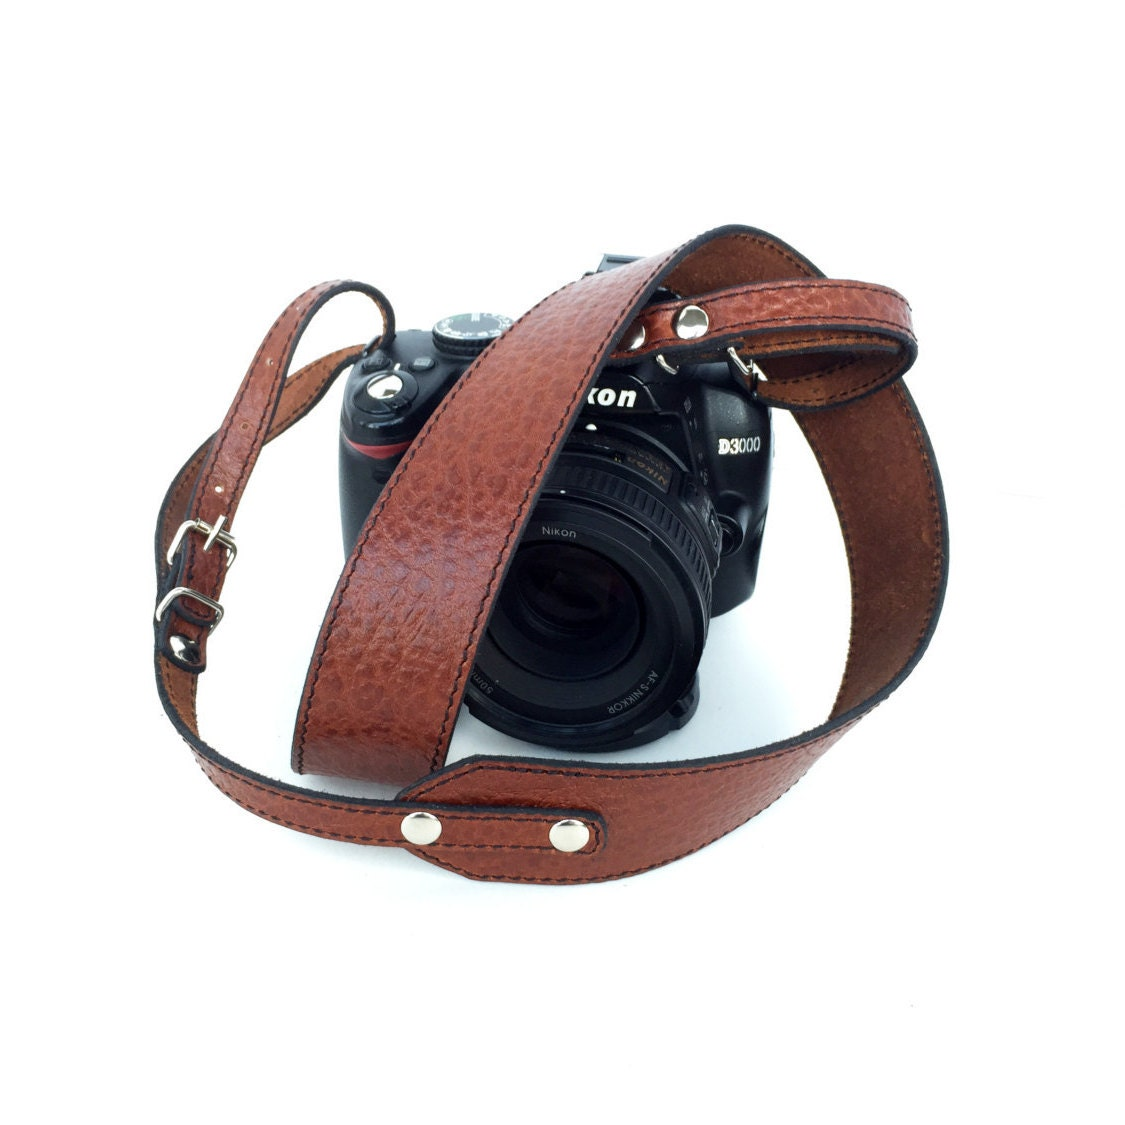 Camera Strap Leather Camera Strap Personalized by ... - photo#25